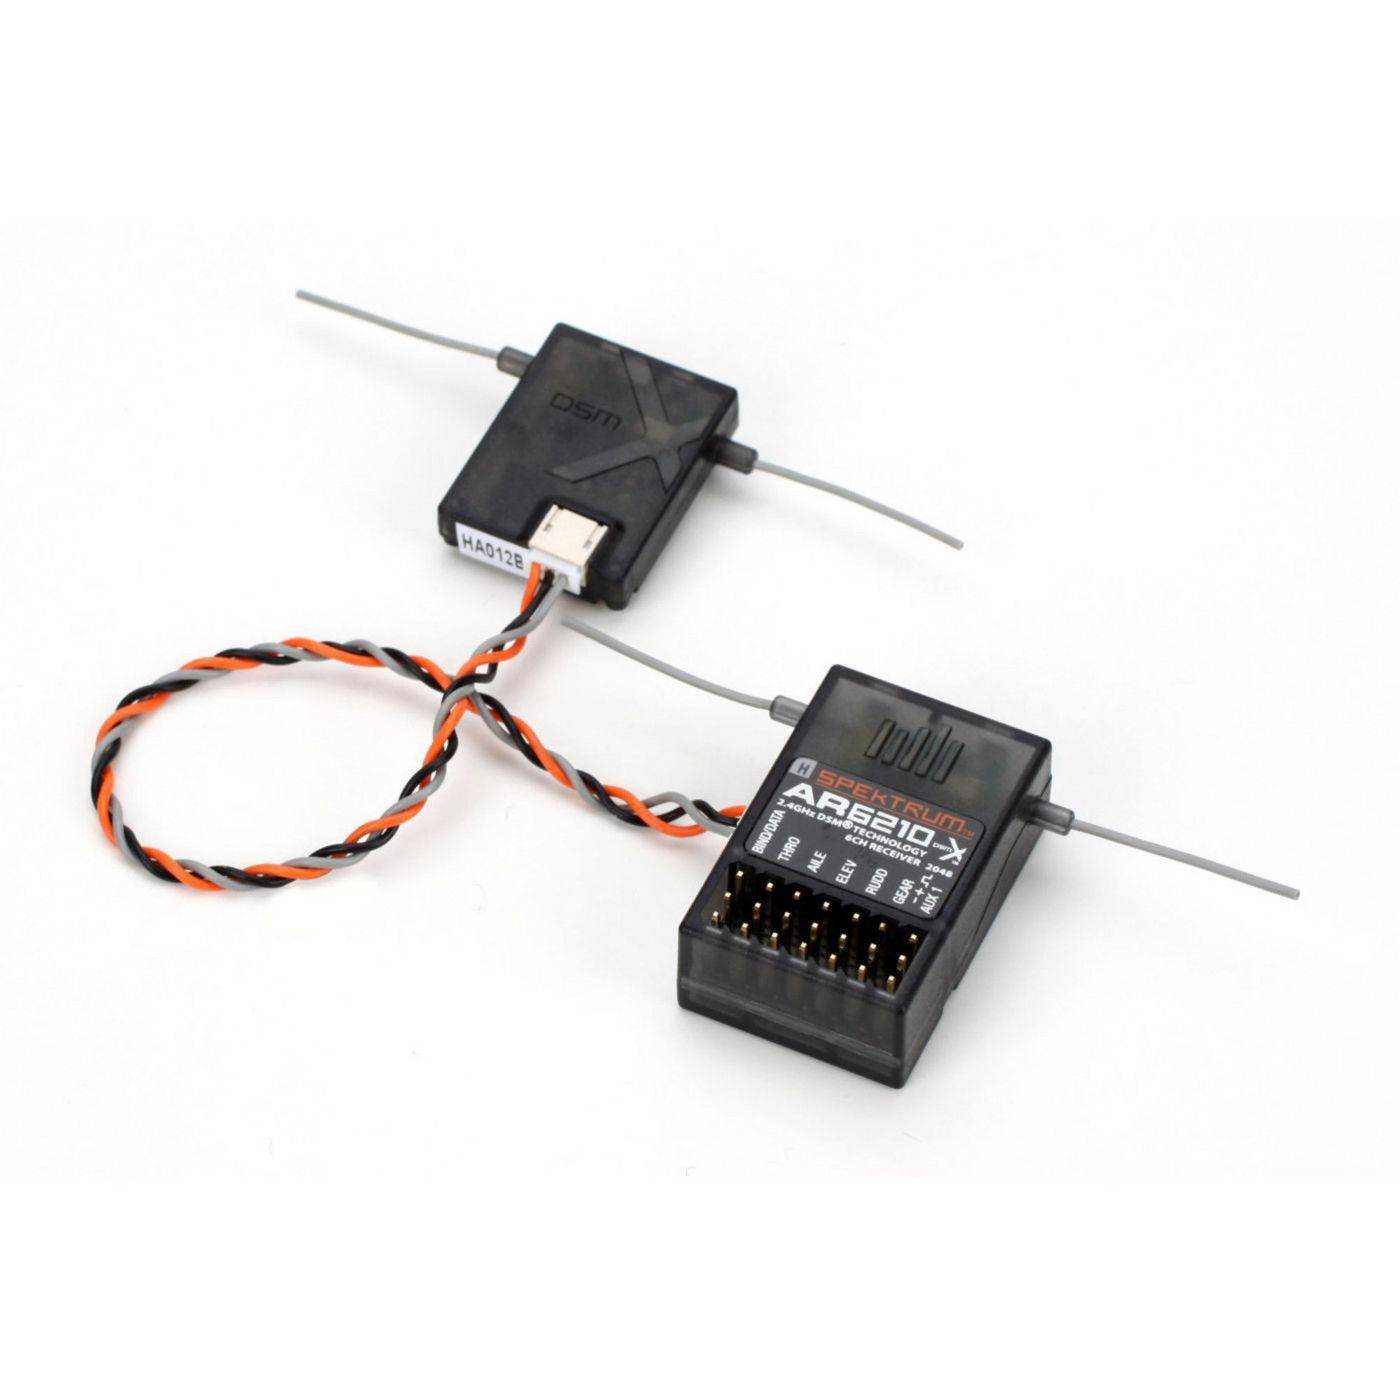 SPMAR6210_a0?wid=1400&hei=778 ar6210 6 channel dsmx receiver horizonhobby  at nearapp.co